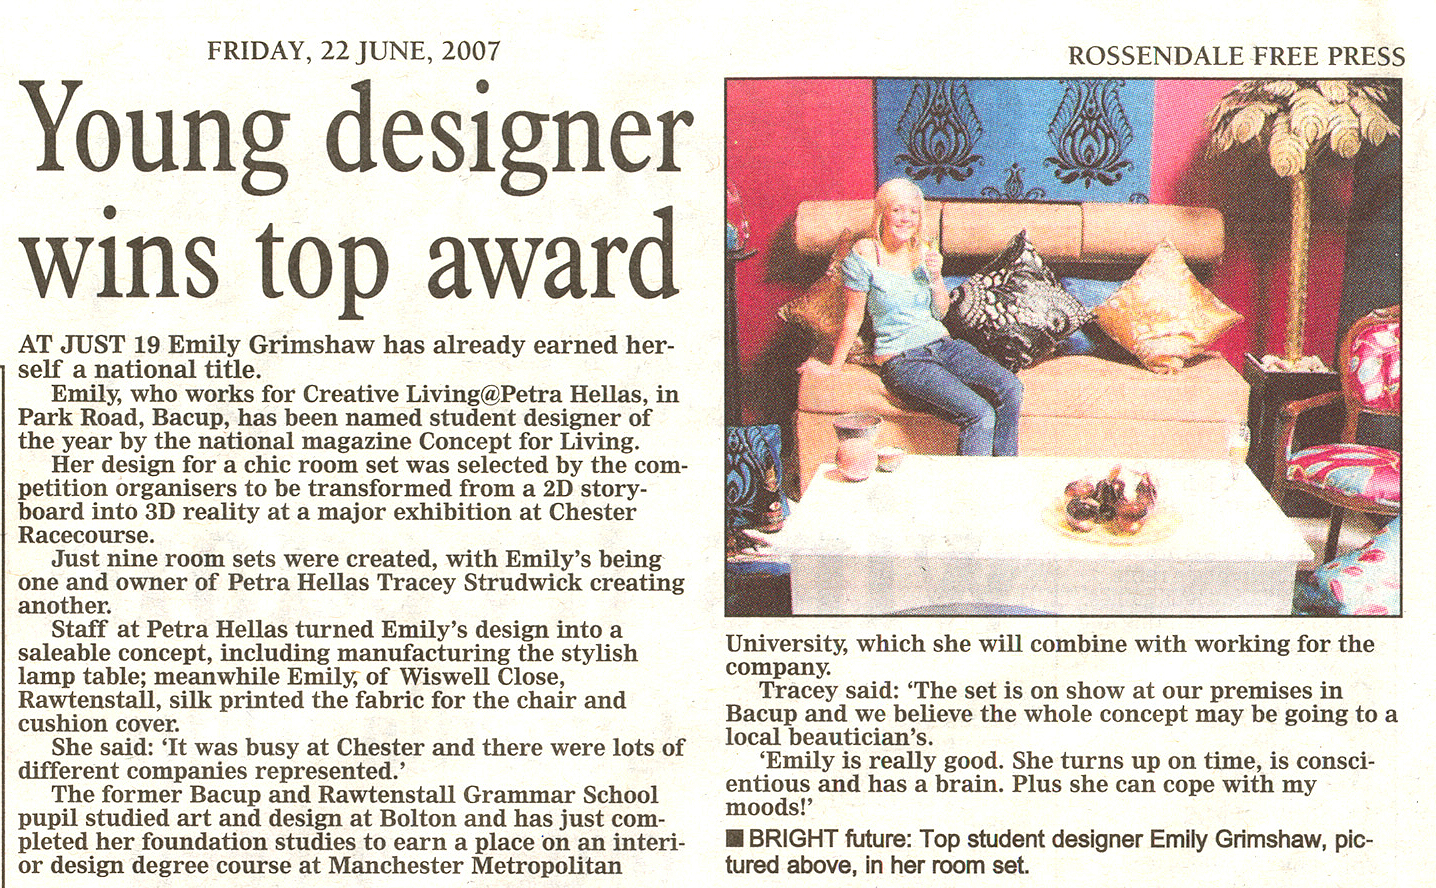 Interior Design Degree Course At Manchester Metropolitan University Read Press Article About Emily